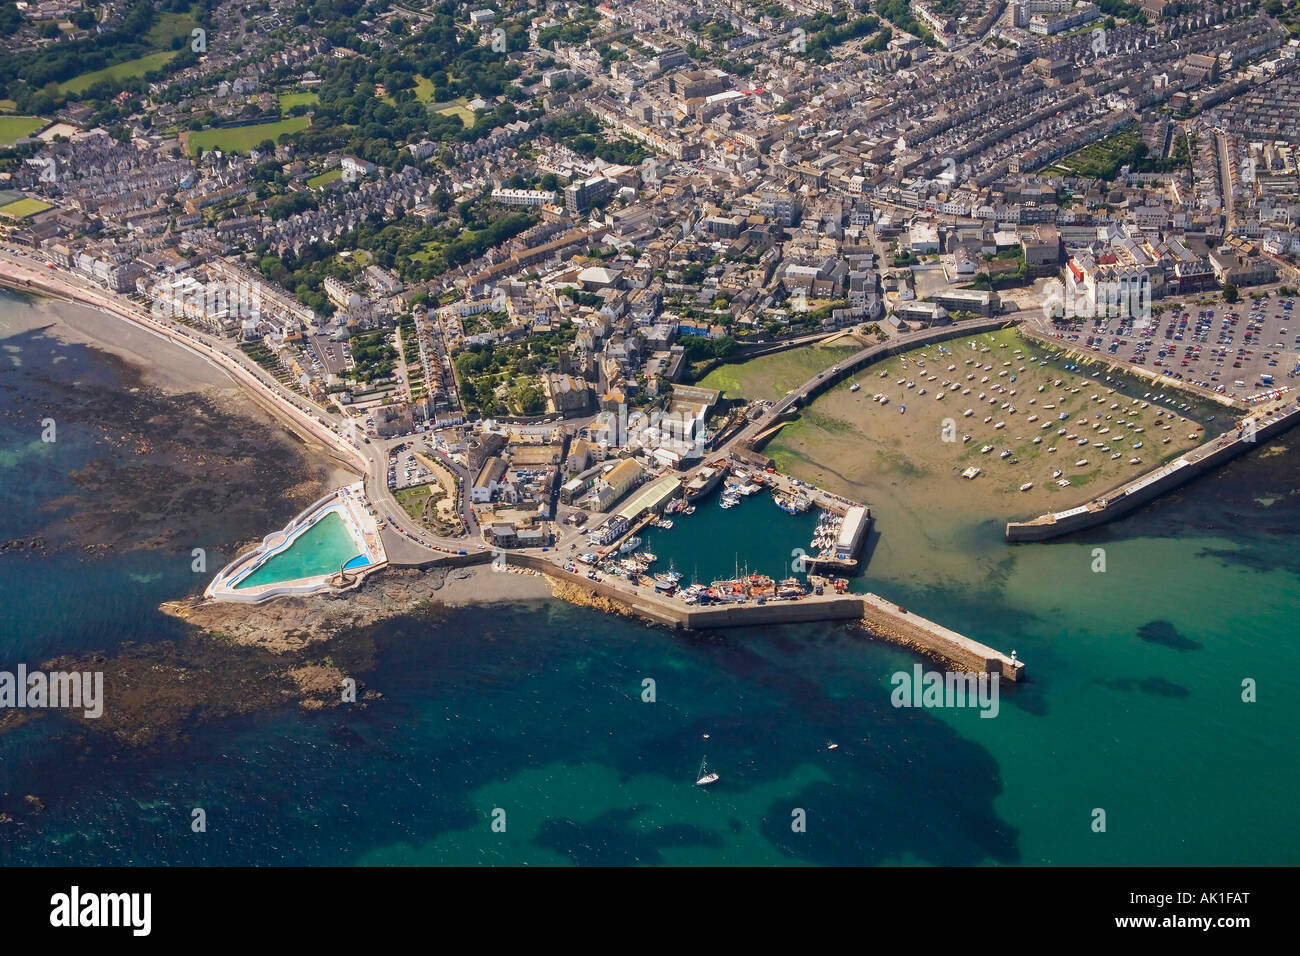 Penzance Aerial View Showing Jubilee Outdoor Pool Lido Cornwall Stock Photo Royalty Free Image